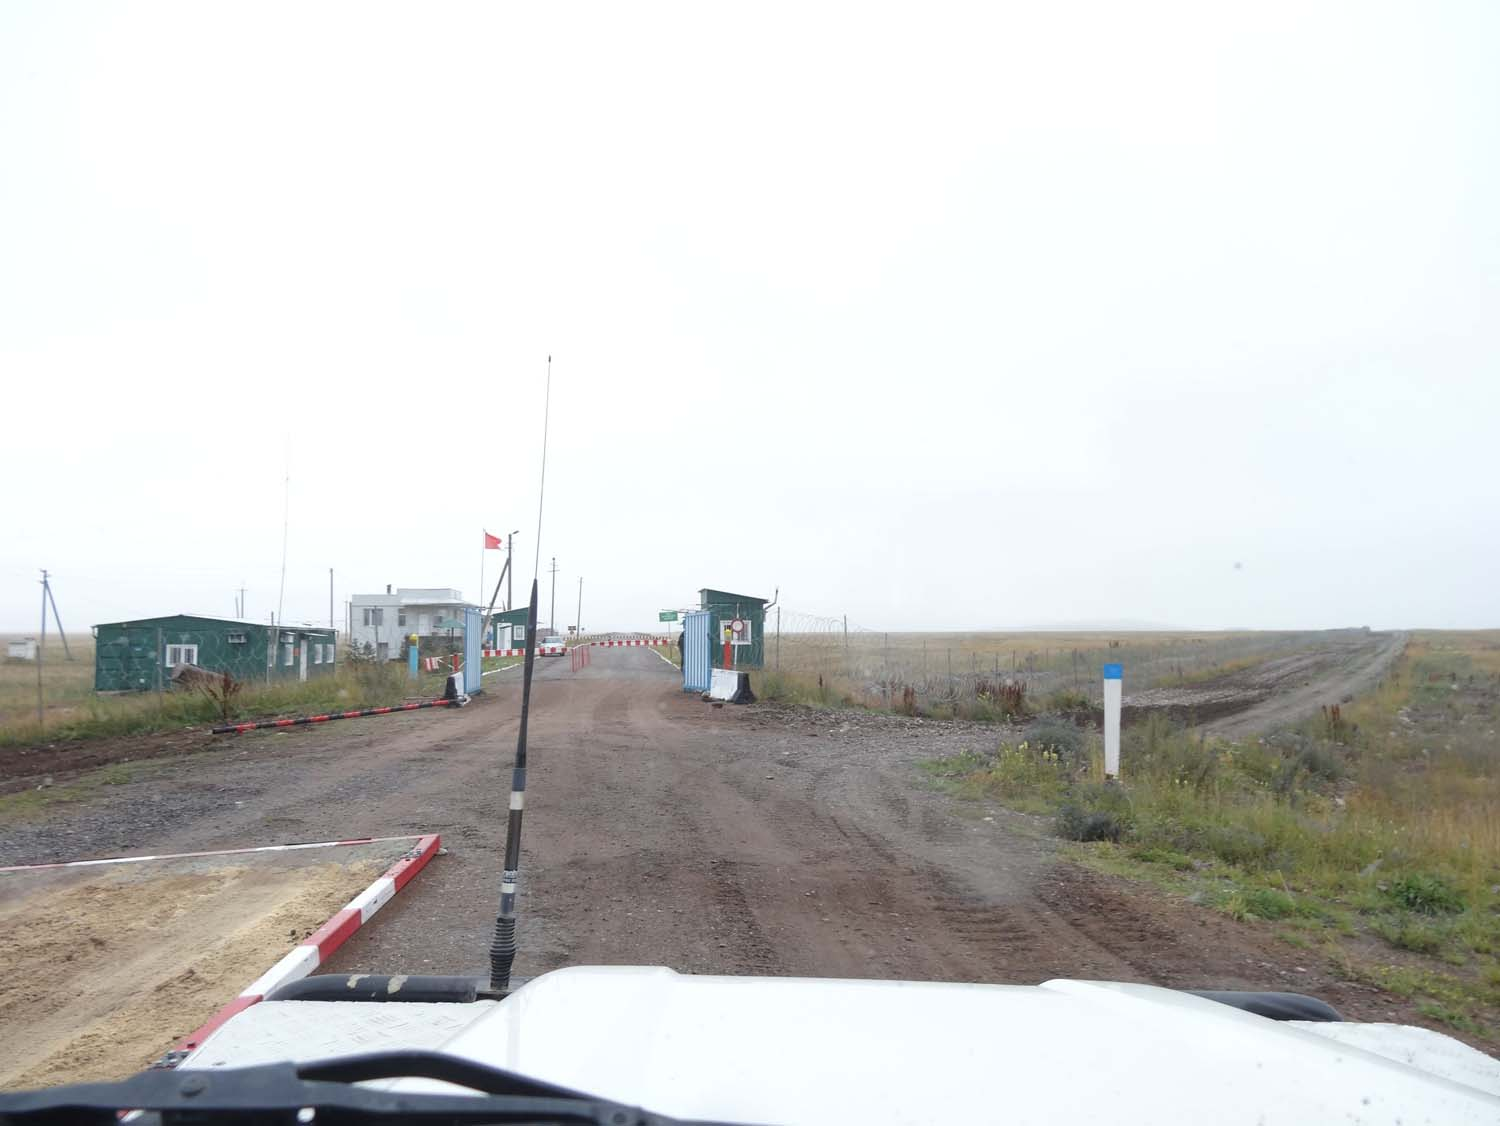 you can just see the sandpit where cars have to drive through going into Kazakhstan. This is the view of the Kyrgyz side of the border post